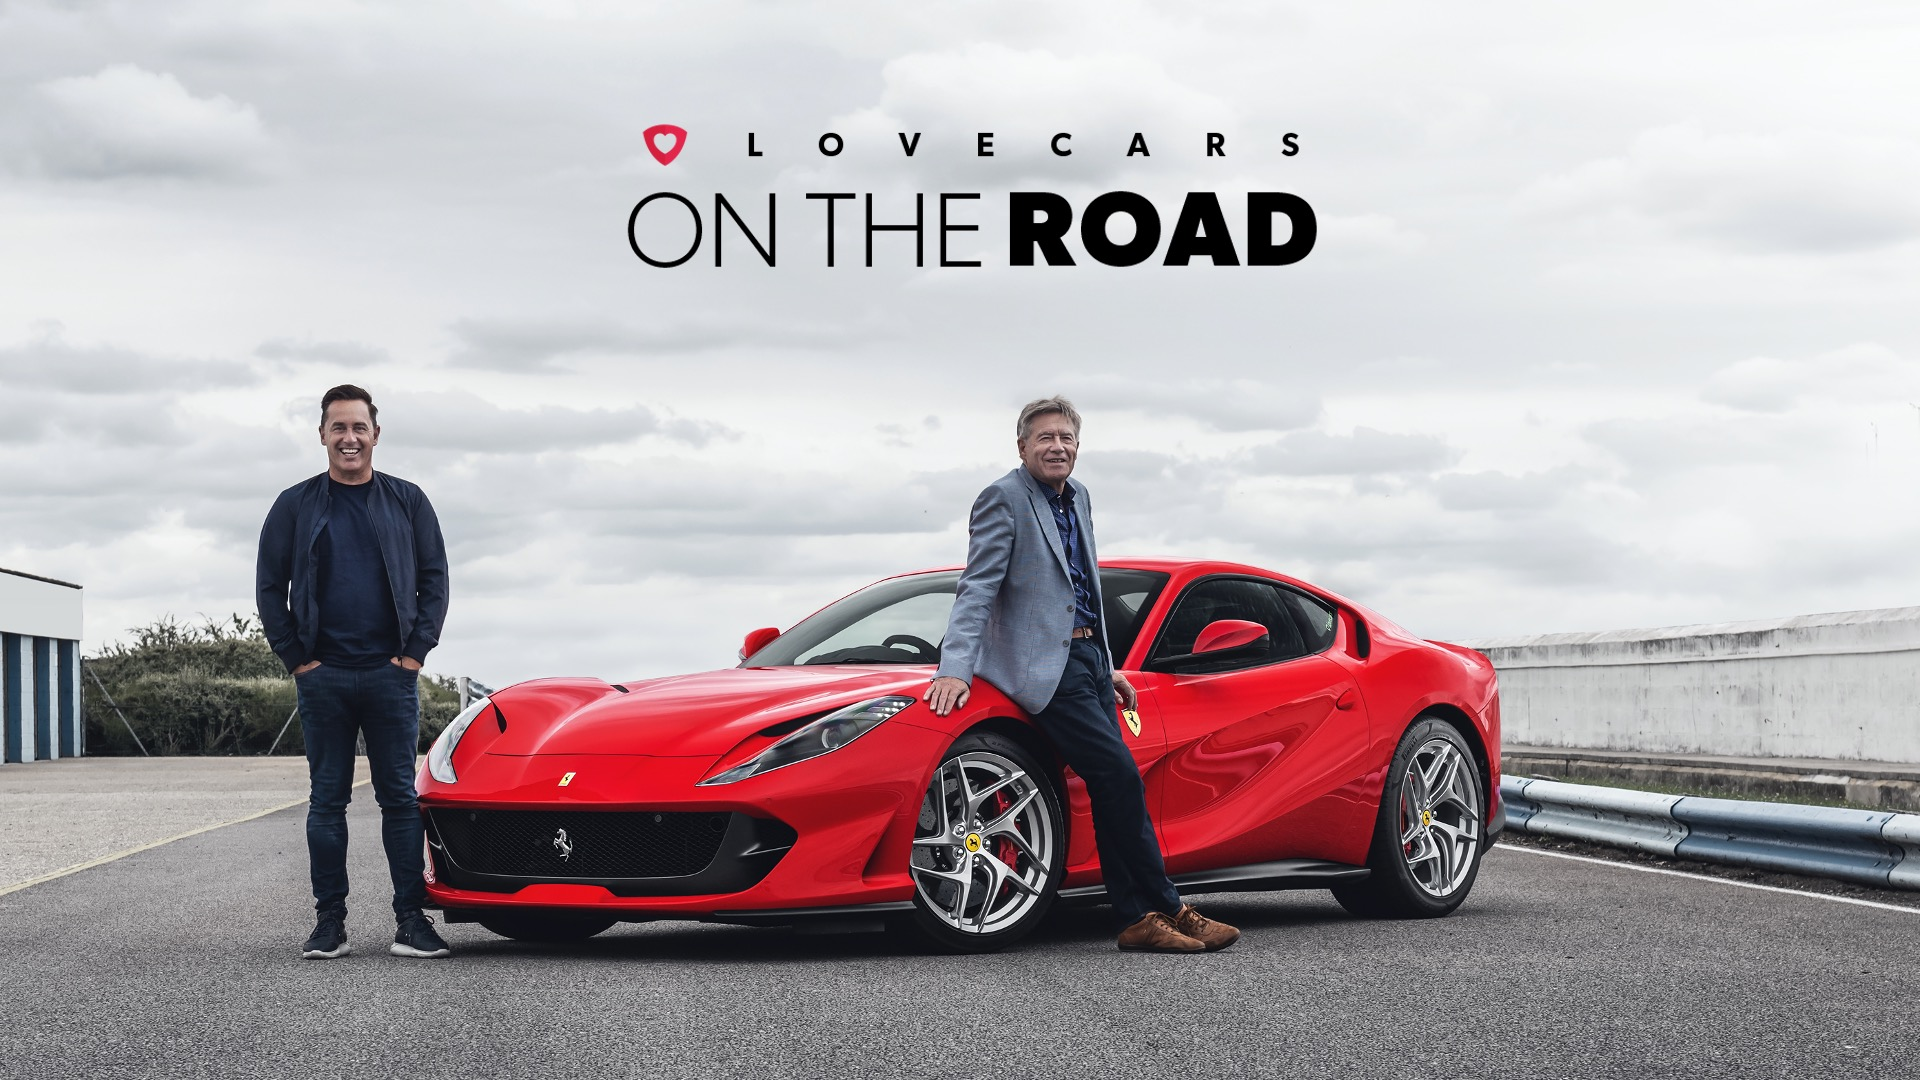 Lovecars: On The Road. New ITV4 Television Show